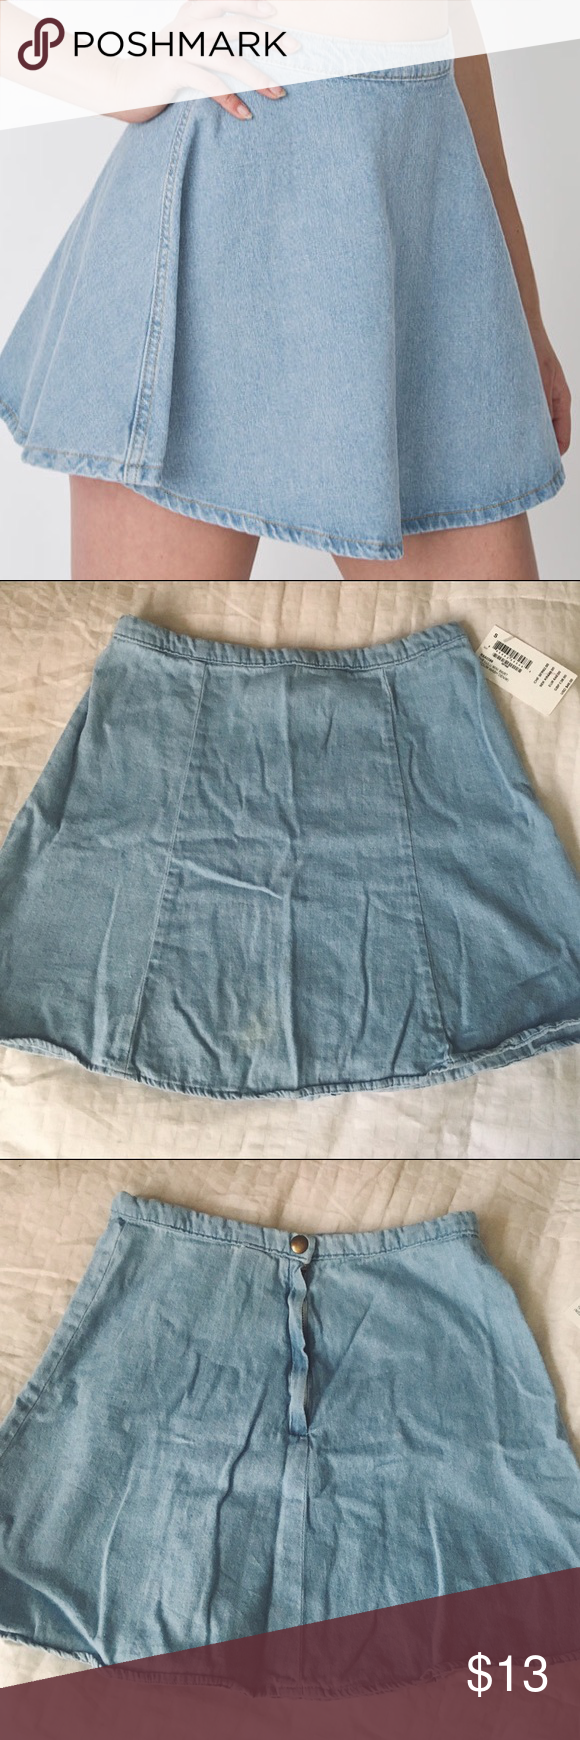 American Apparel lulu denim skirt Size small. Has slight discoloration in front not sure what it's from, it's been in storage however when worn it's not very noticeable, especially if you wear the zipper to the side.  •no trades or holds✖️ •I'm only on poshmark✔️ •use offer button please💙 •same/next day shipping📬 American Apparel Skirts Circle & Skater